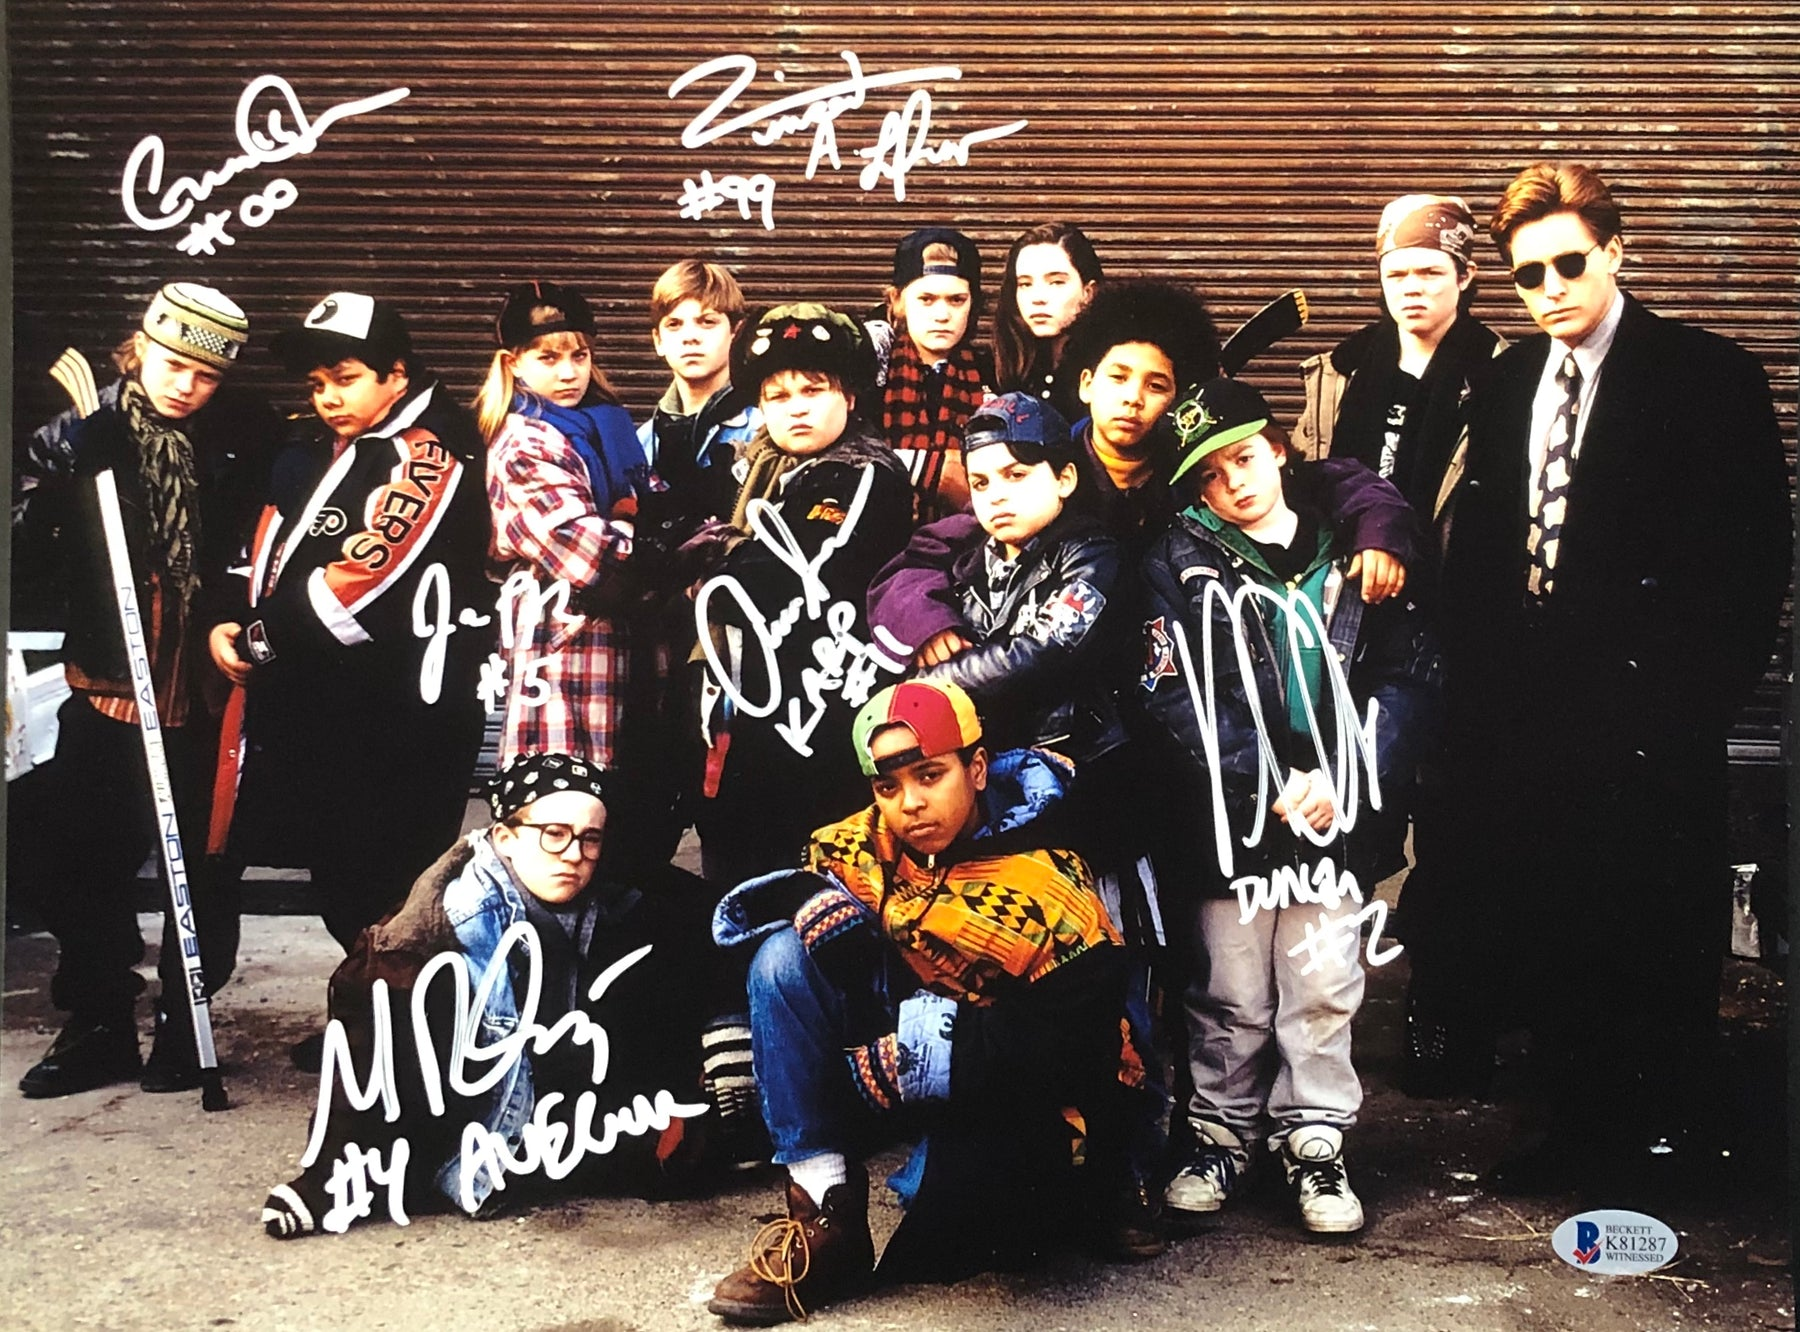 The Mighty Ducks Cast Autographed 11x14 Photo